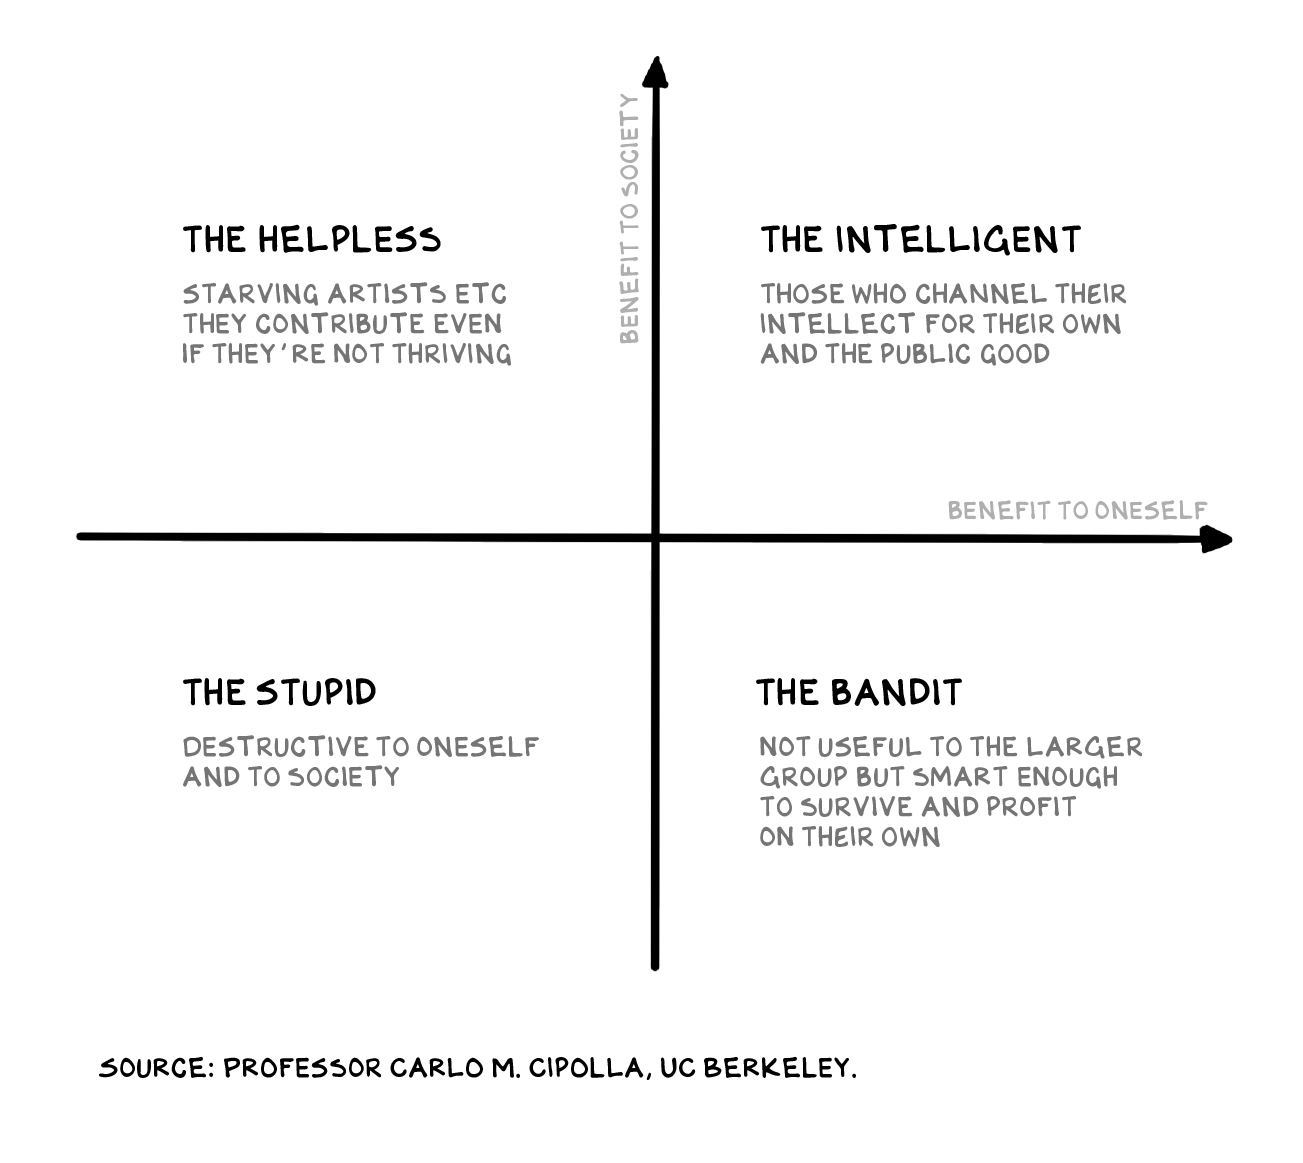 """4 quadrant graph showing """"The Helpless,"""" """"The Intelligent,"""" """"The Stupid,"""" and """"The Bandit"""" starting clockwise from top left"""